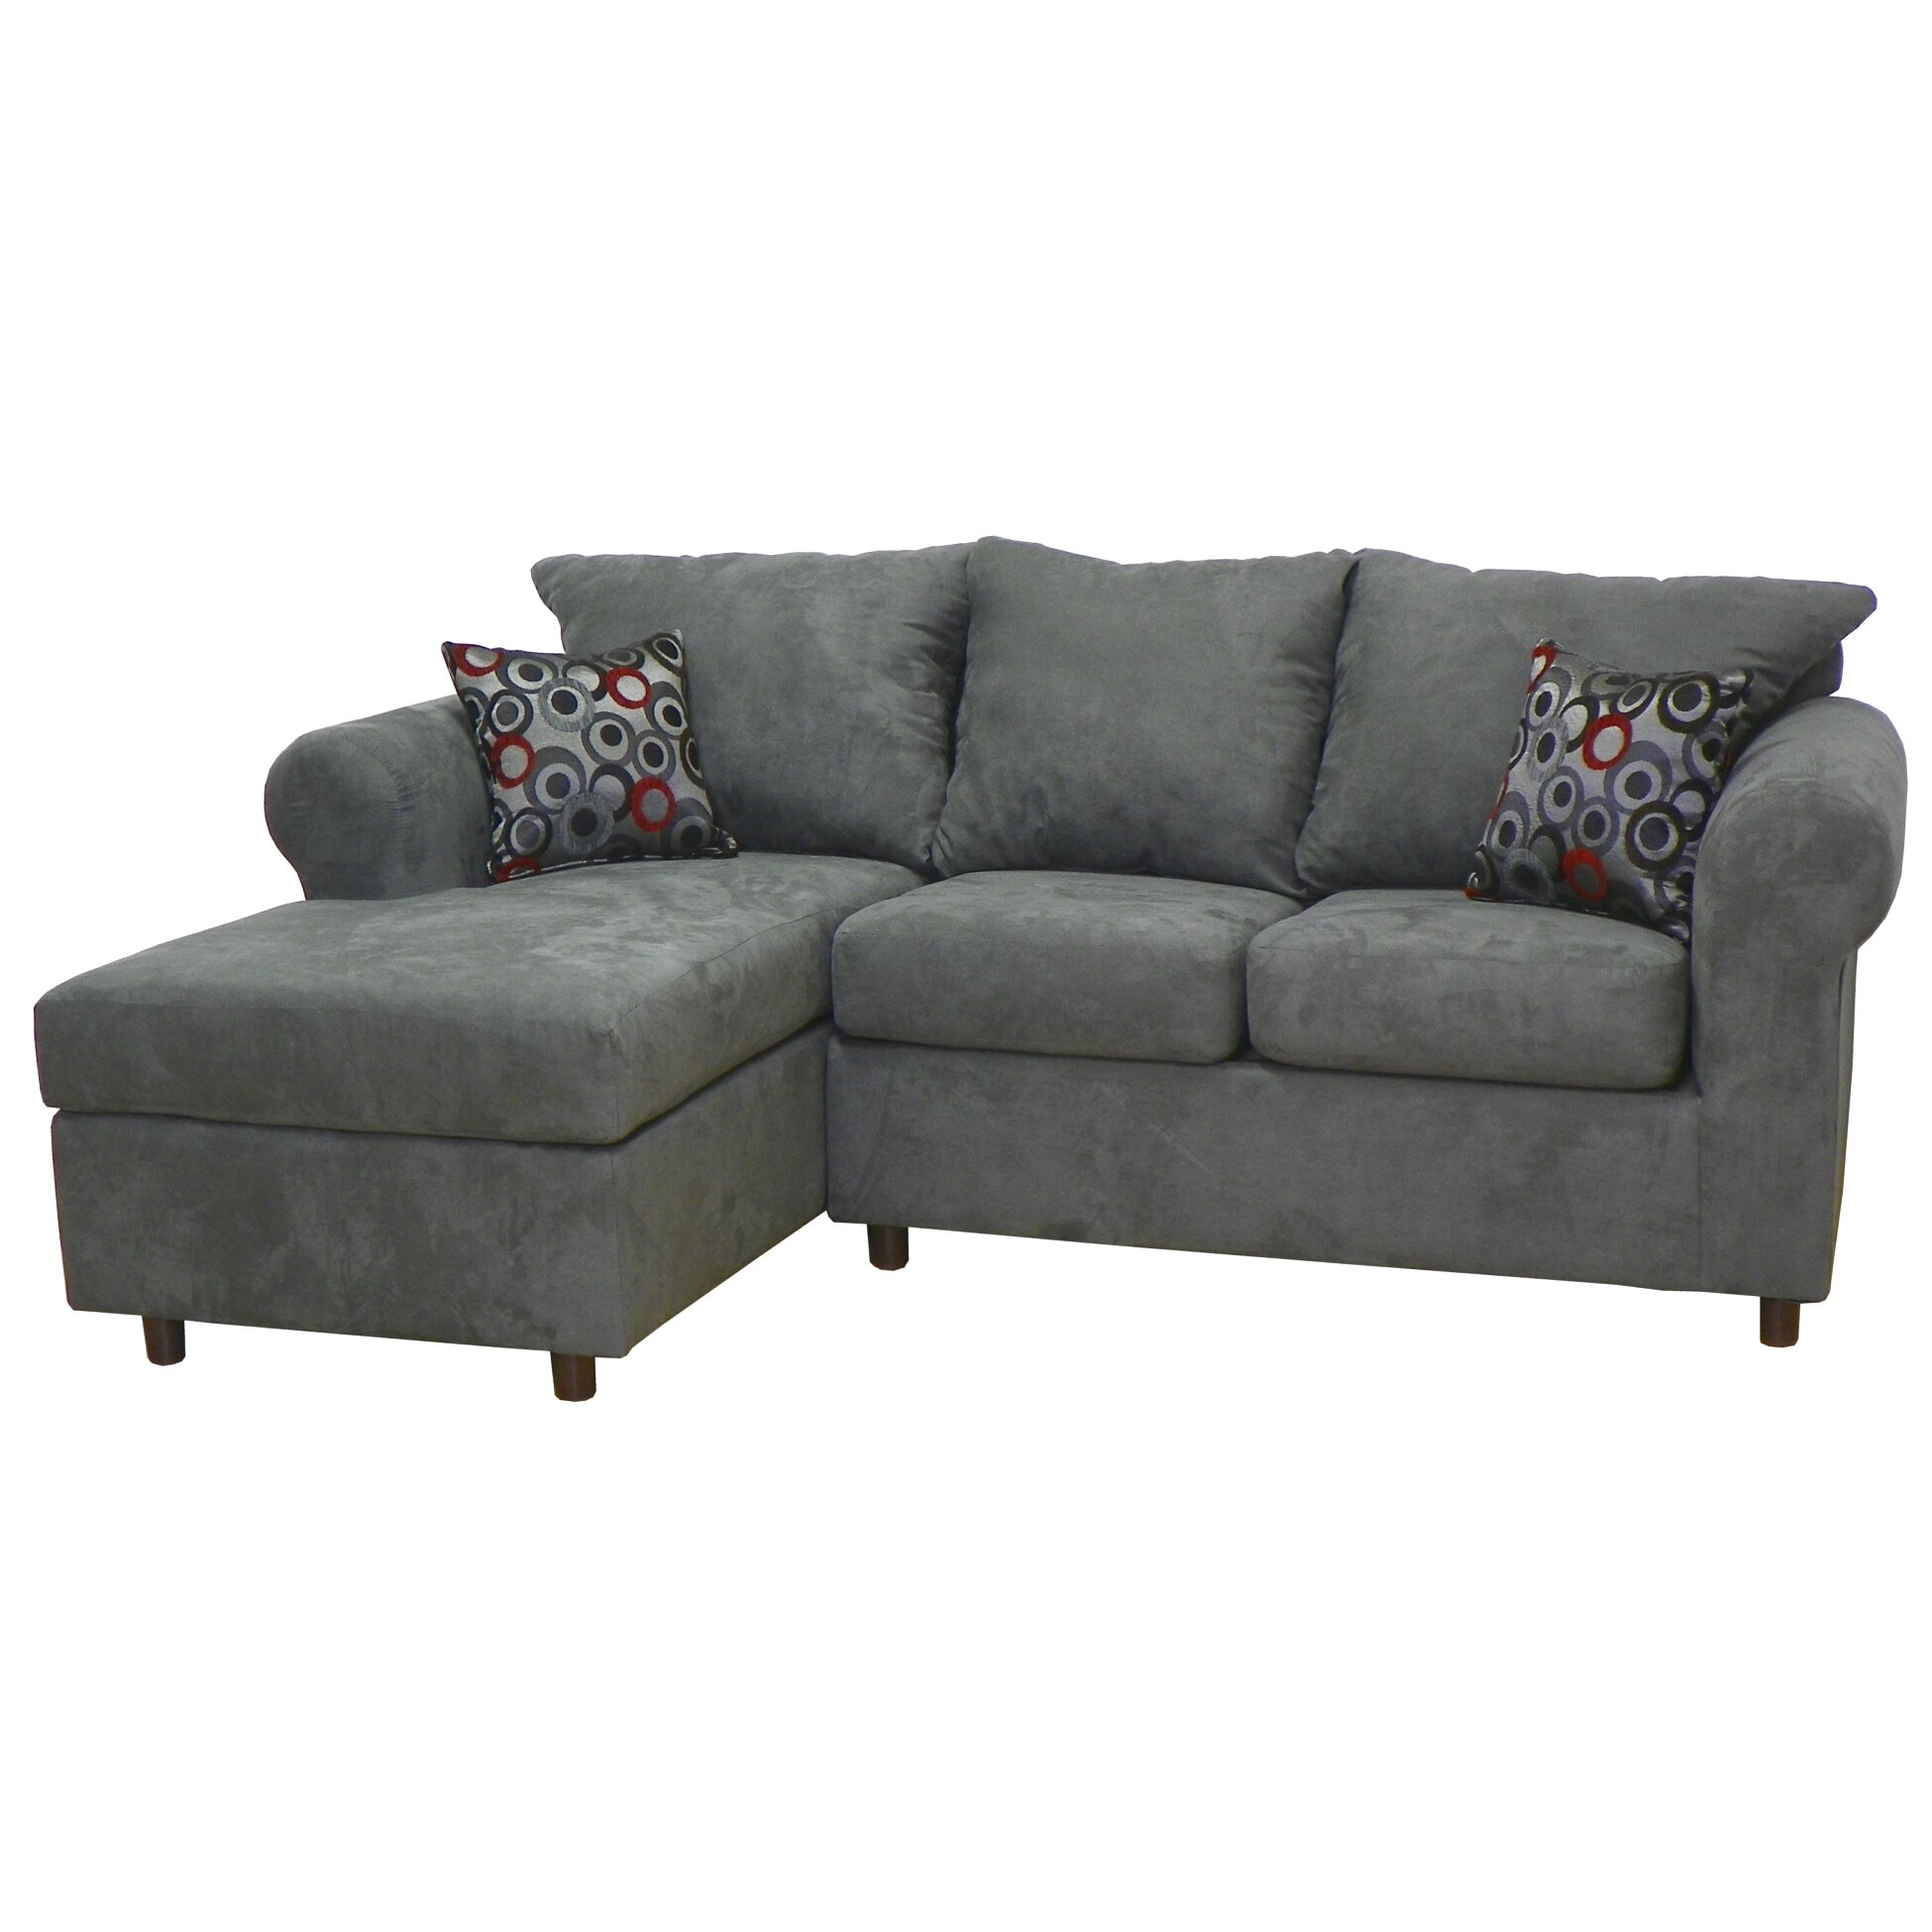 Traditional Sectional Sofas Living Room Furniture Traditional Sectional Sofas Youll Love Wayfair